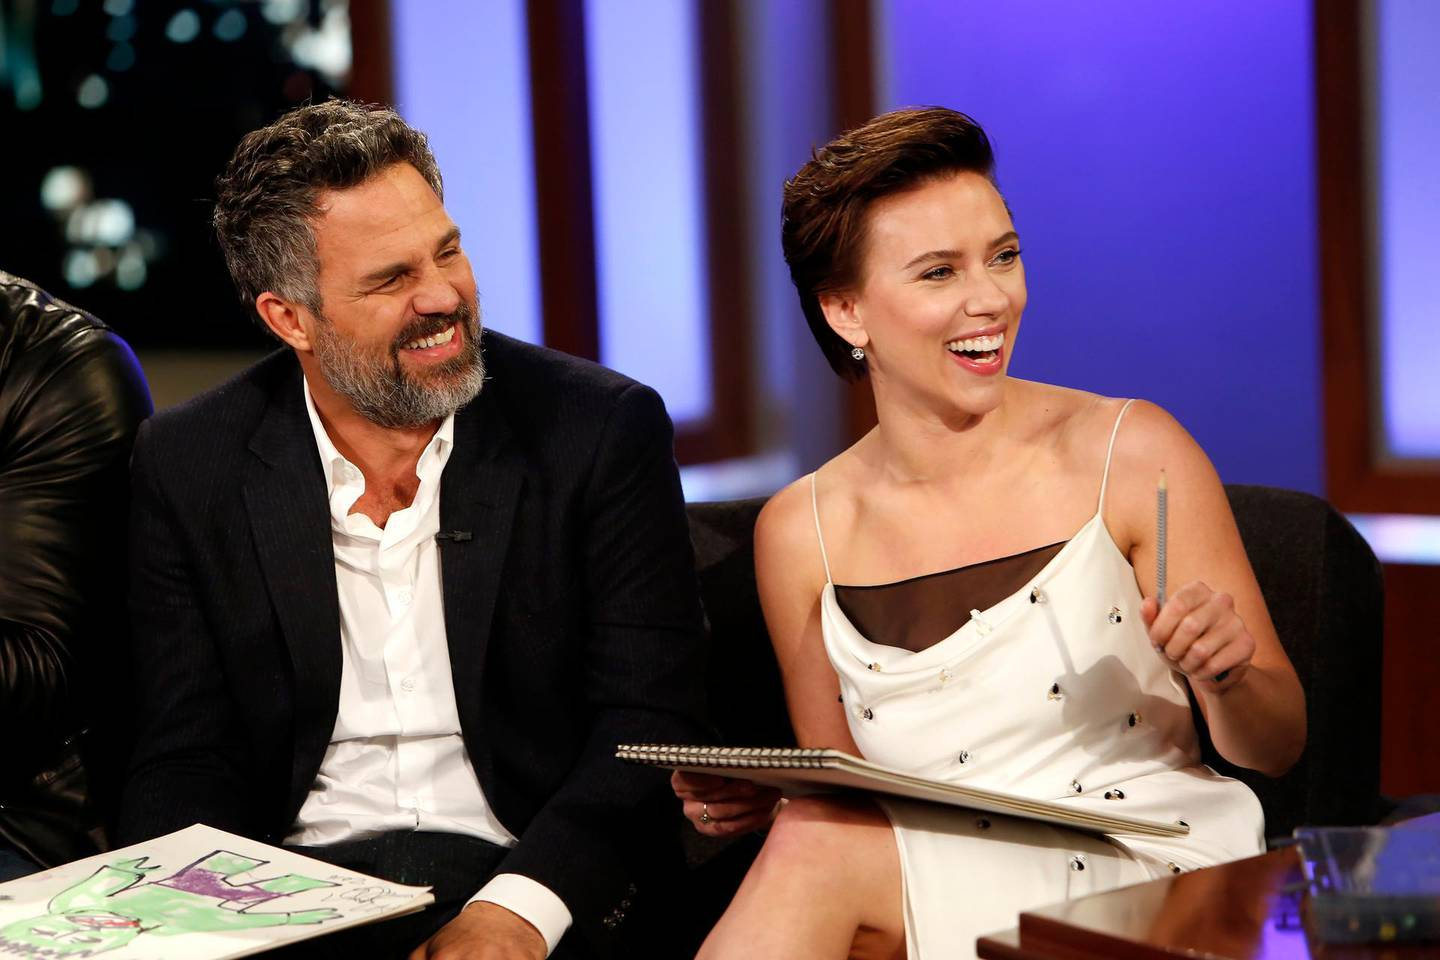 """JIMMY KIMMEL LIVE! - """"Jimmy Kimmel Live!"""" airs every weeknight at 11:35 p.m. EDT and features a diverse lineup of guests that include celebrities, athletes, musical acts, comedians and human interest subjects, along with comedy bits and a house band. The guests for Tuesday, April 24 included Mark Ruffalo, Scarlett Johansson, Tom Hiddleston, Danai Gurira and Dave Bautista (""""Avengers: Infinity War""""), and musical guest Bleachers. (Randy Holmes via Getty Images) MARK RUFFALO, SCARLETT JOHANSSON"""